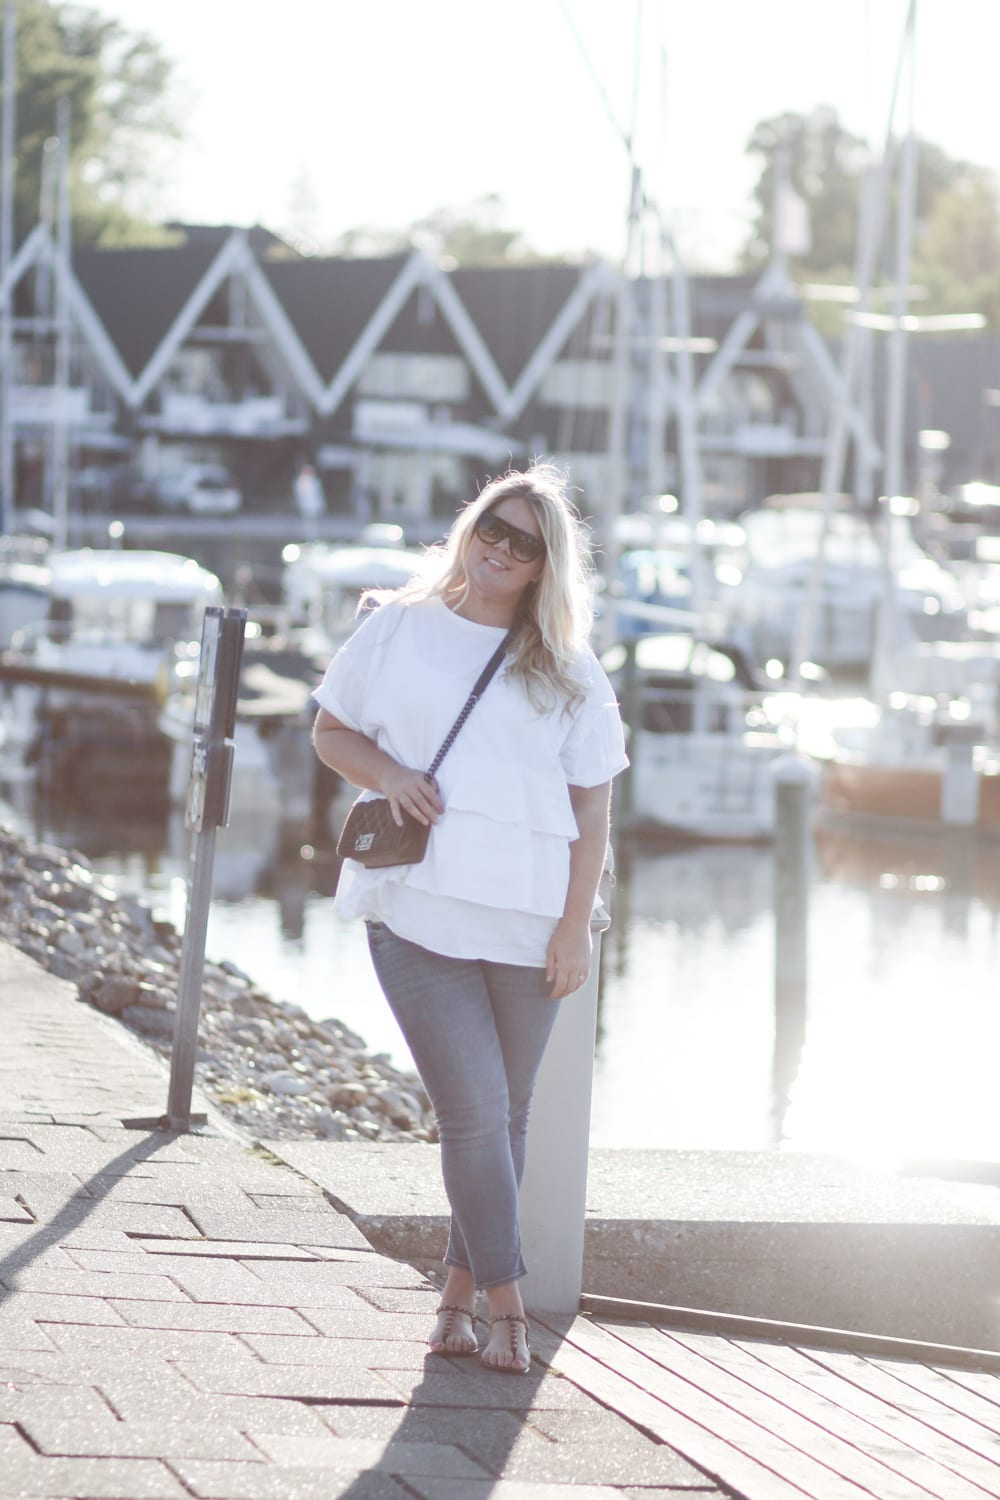 acie-outfit-rungsted-zara-tee-flaeser-celine-6-of-23